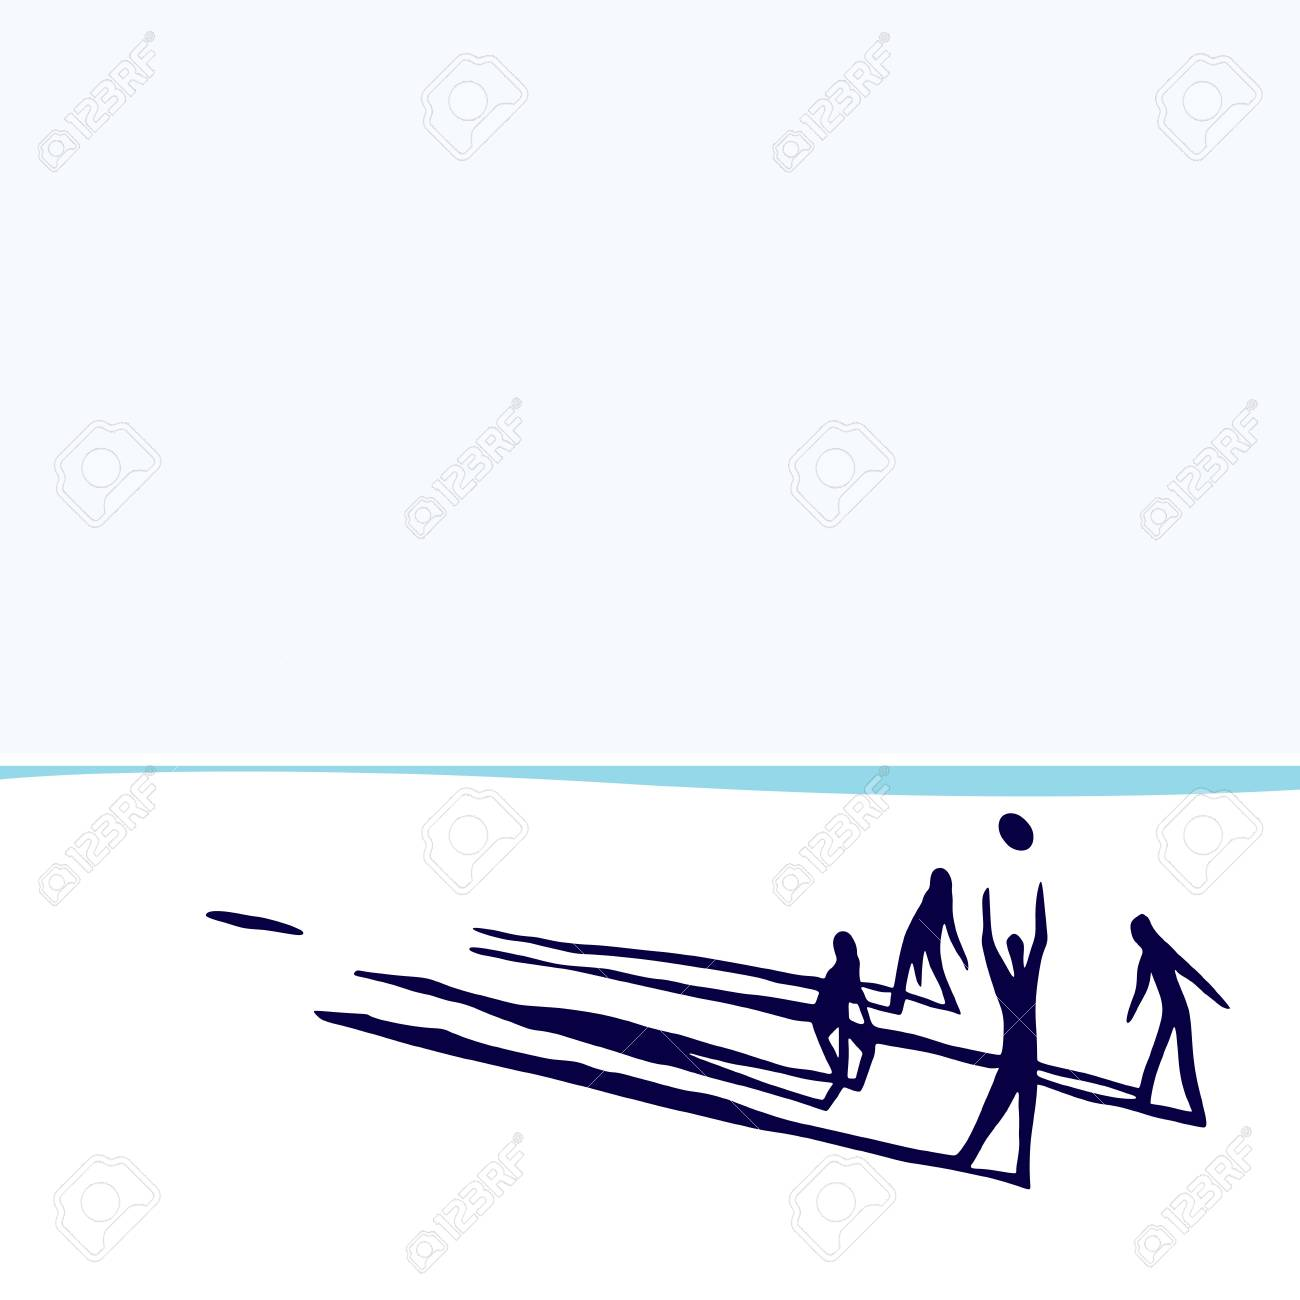 People on beach playing volleyball. Stock Vector - 10528752